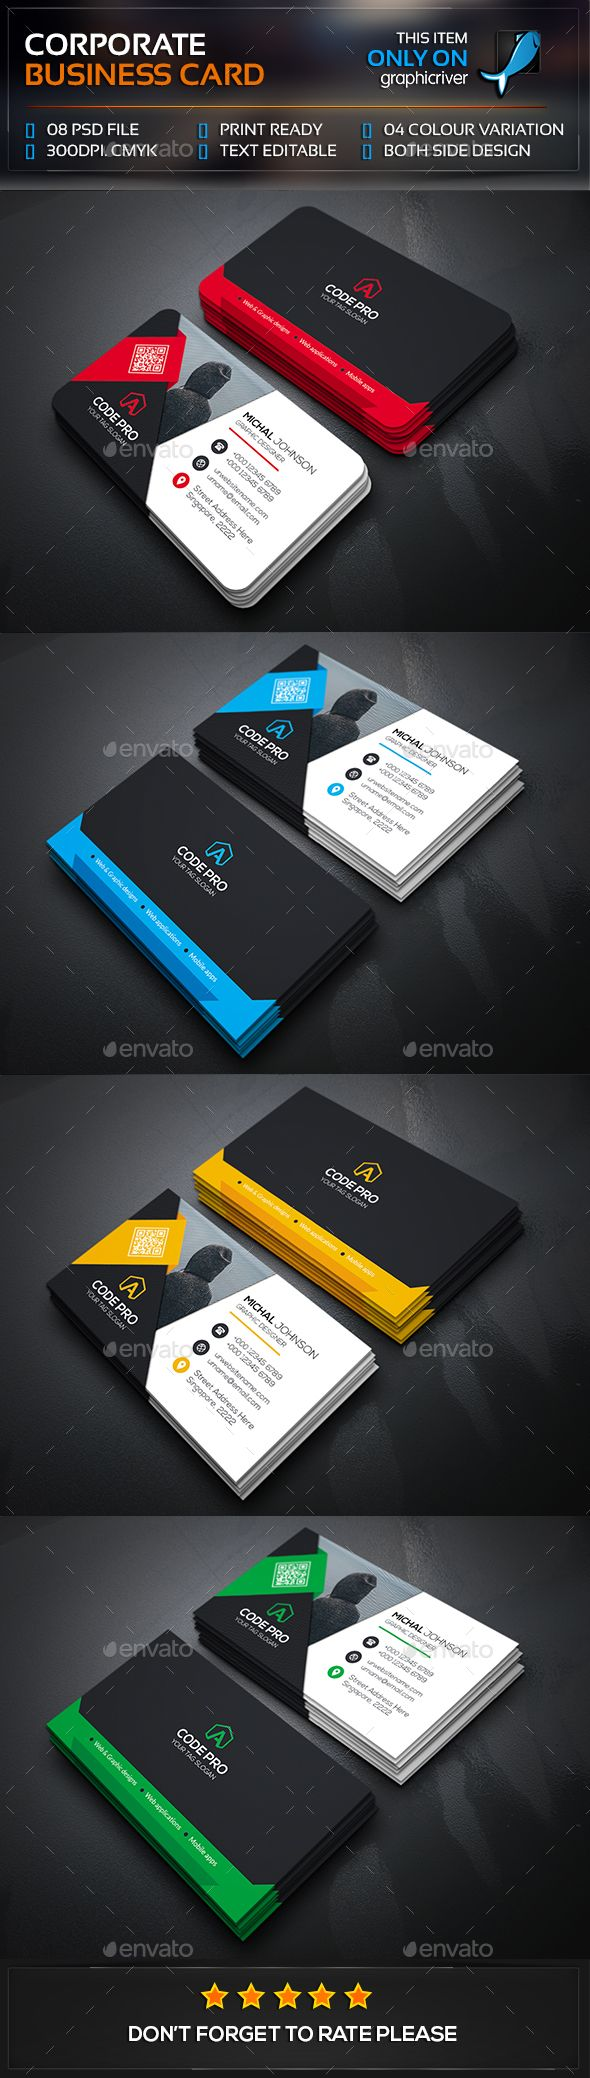 Smart Corporate Business Card — Photoshop PSD #magagine #print • Available here → https://graphicriver.net/item/smart-corporate-business-card/13472300?ref=pxcr